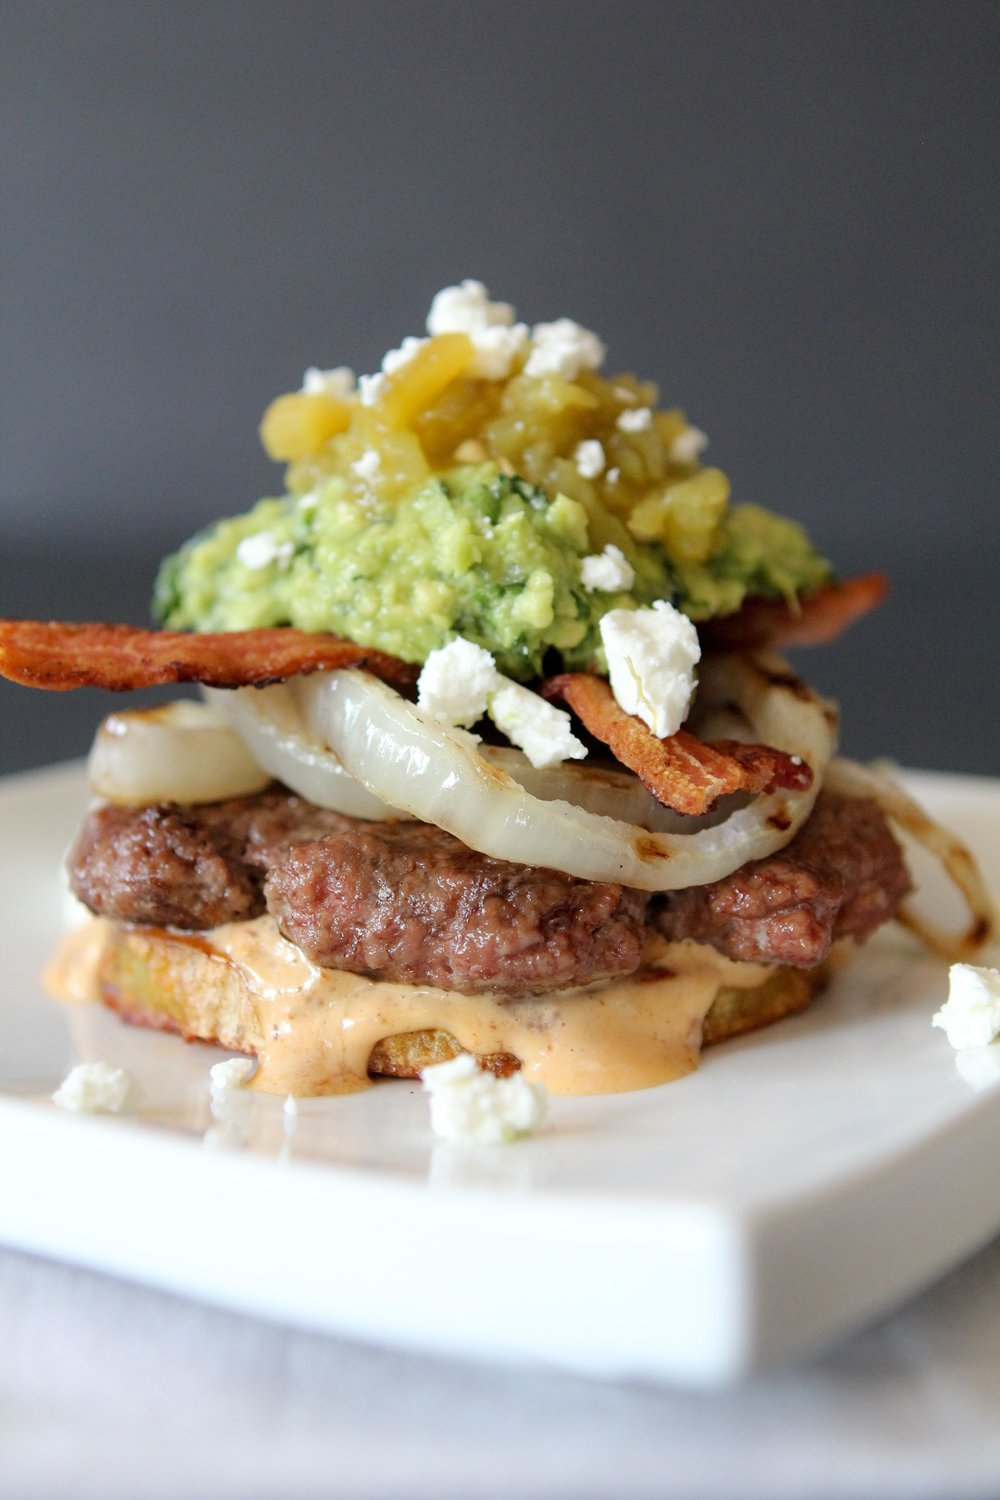 Green Chile + Chipotle Mayo Burger / The Whole Smiths